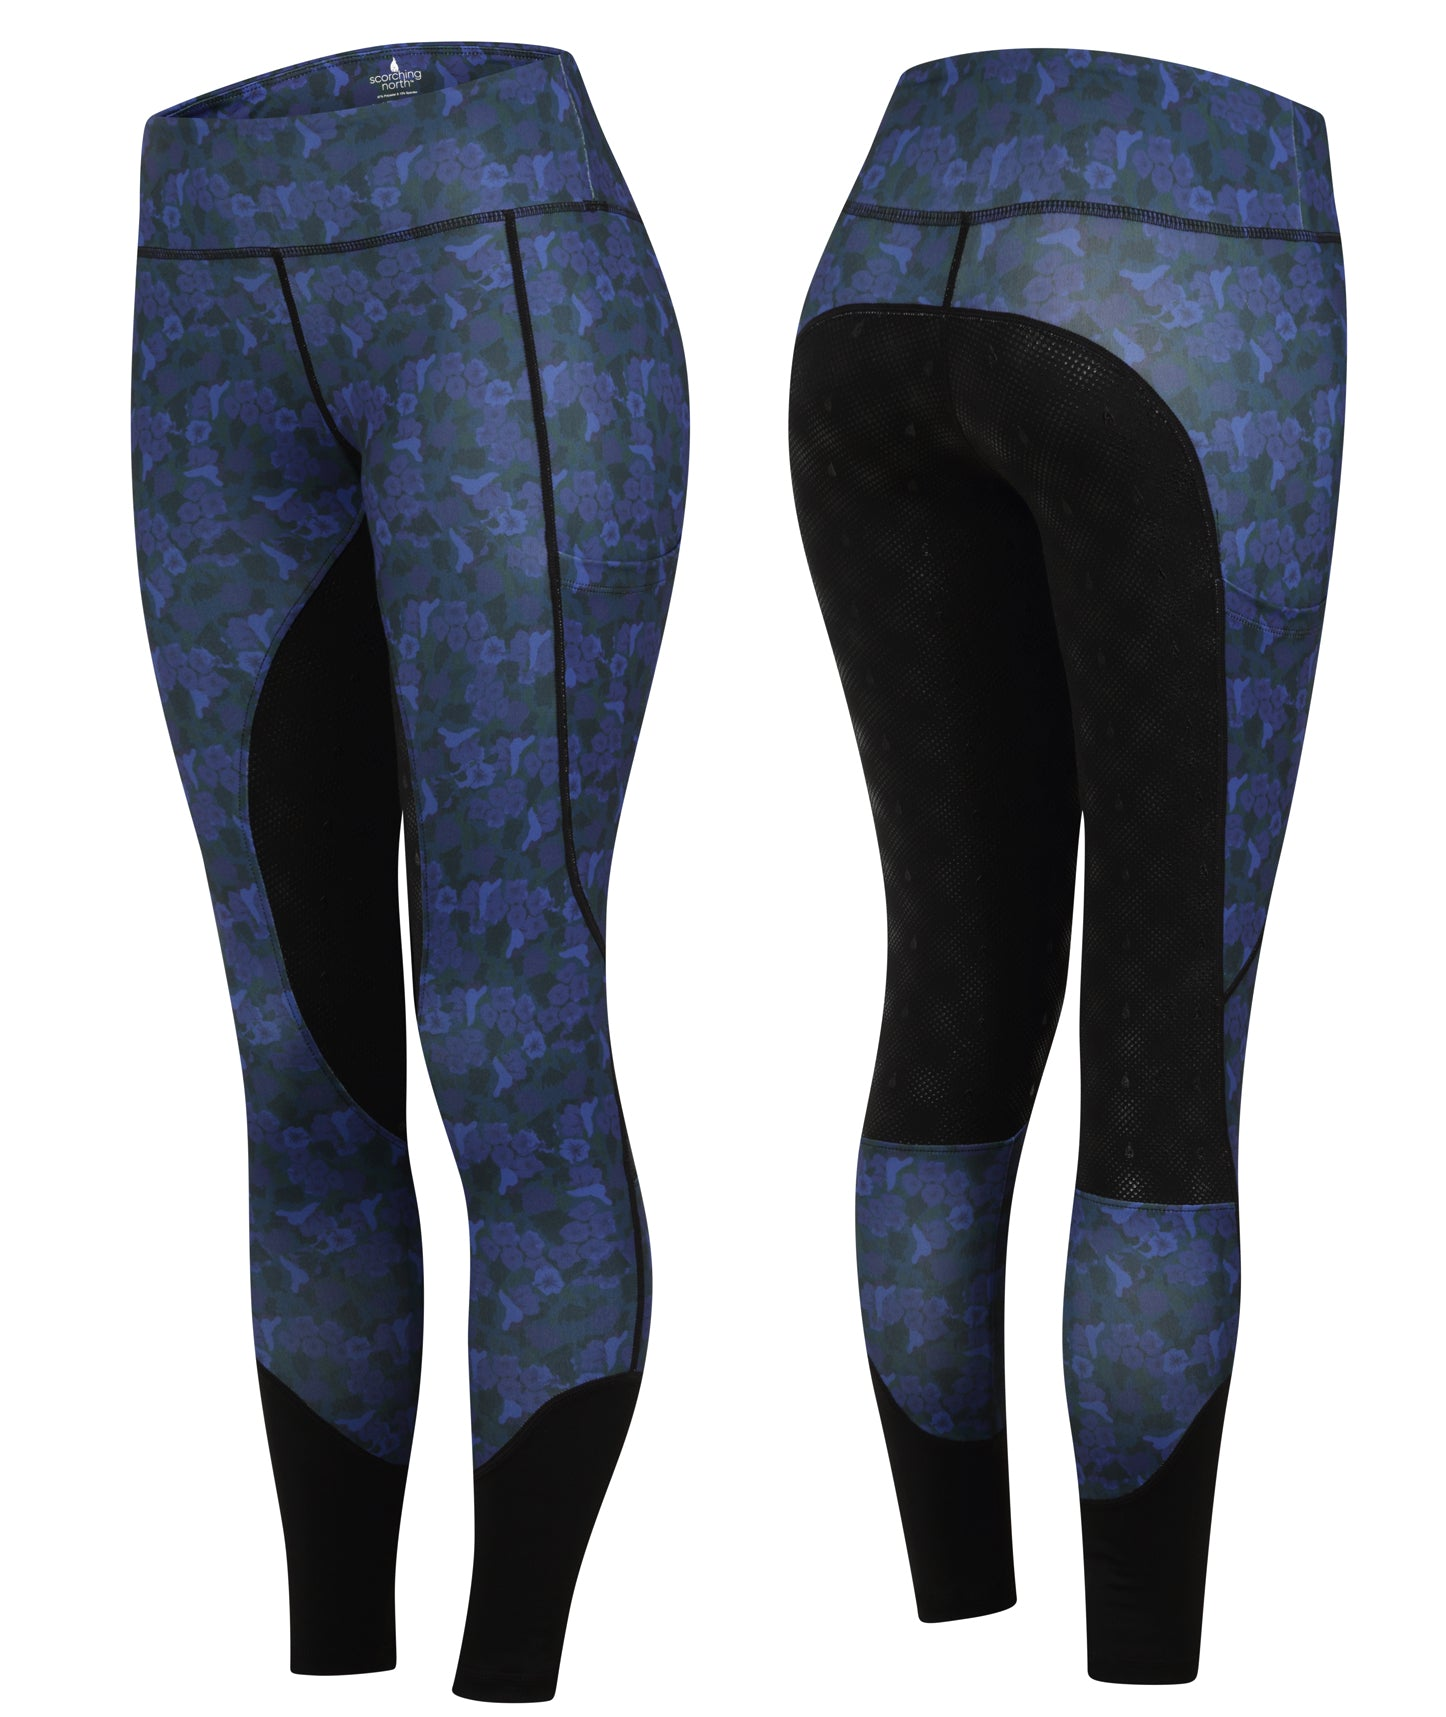 VIVID Riding Leggings - Midnight